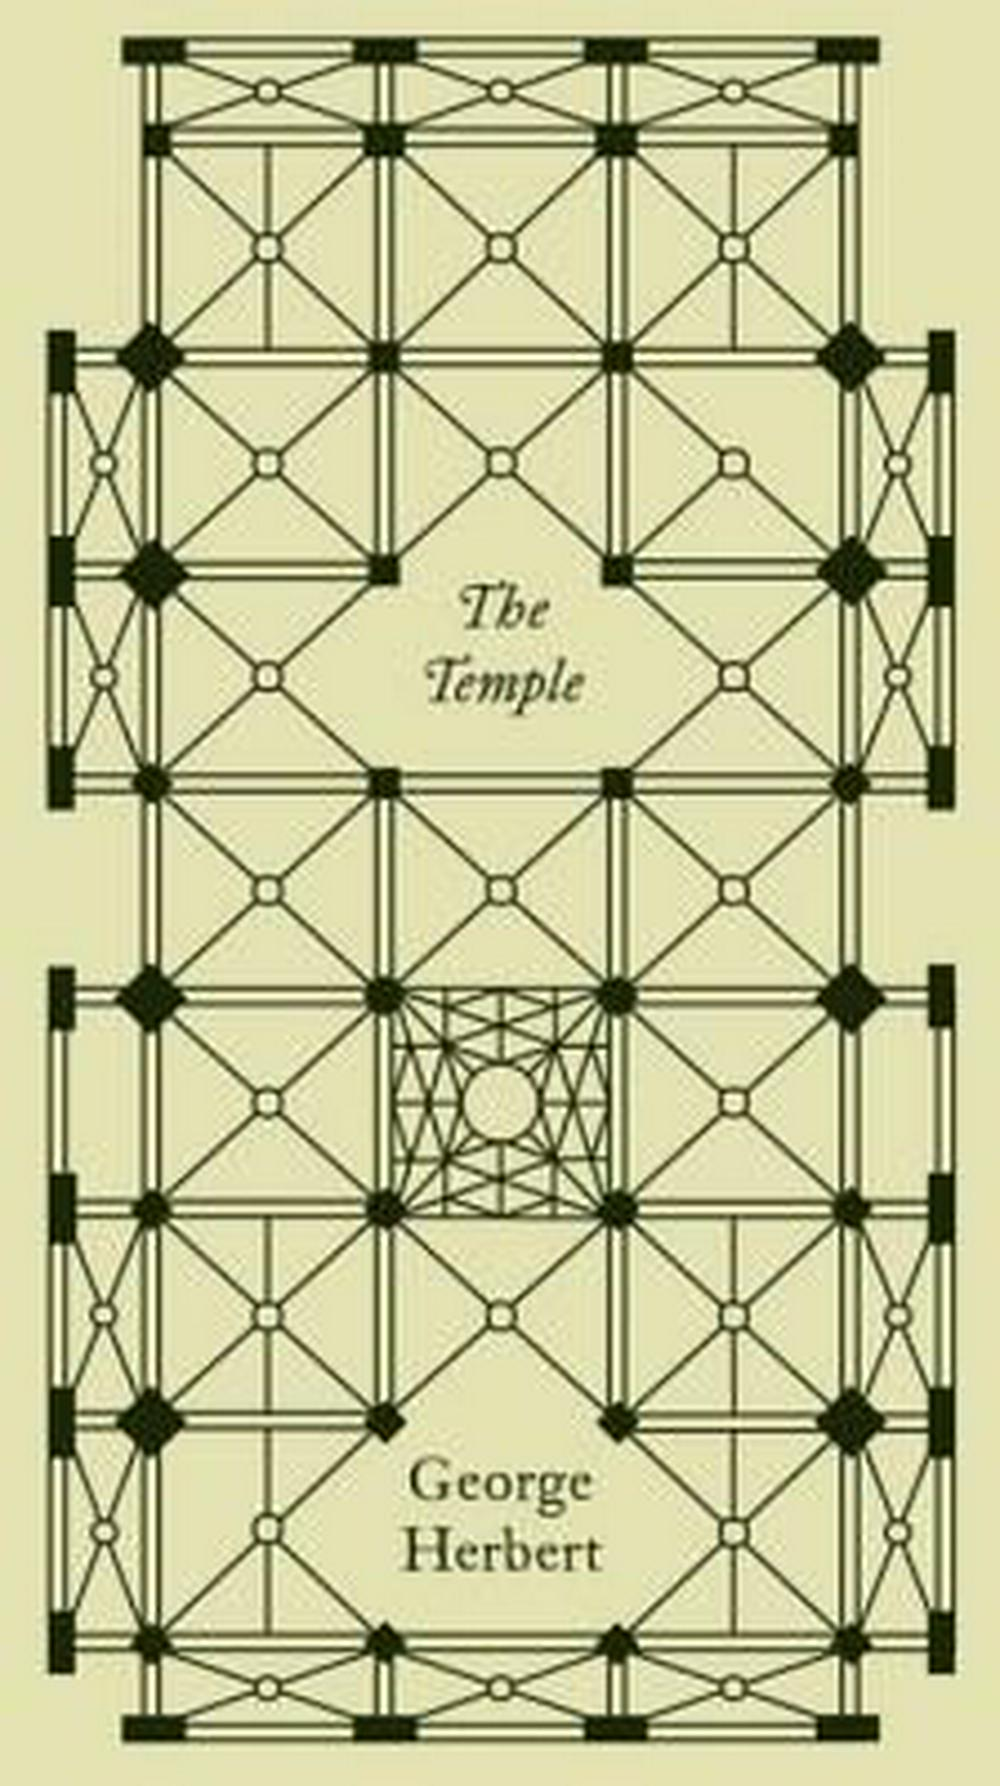 The Temple (Penguin Pocket Poetry)